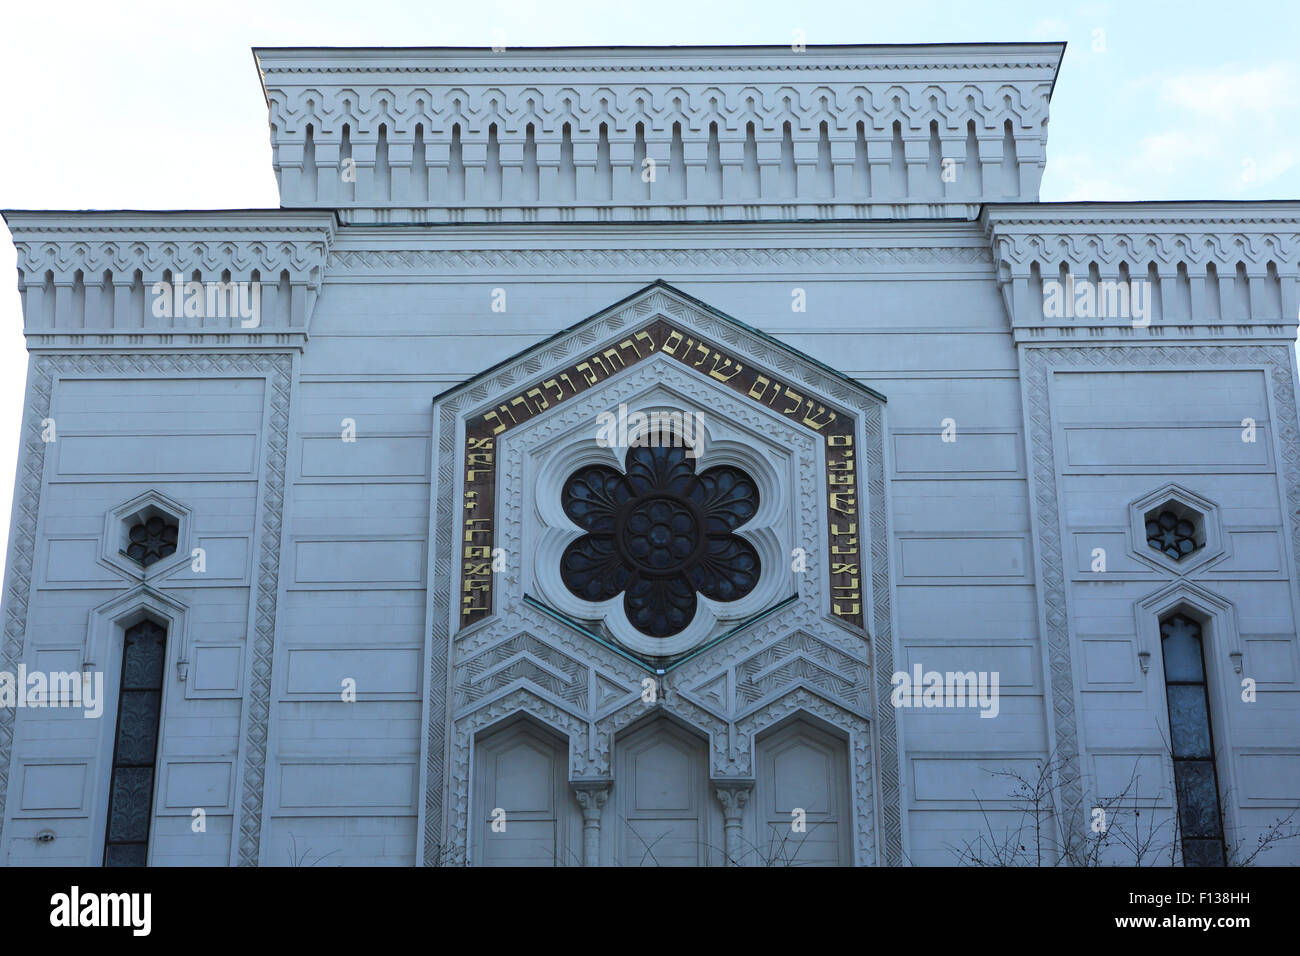 The Great Synagogue of Stockholm in Stockholm, Sweden. - Stock Image